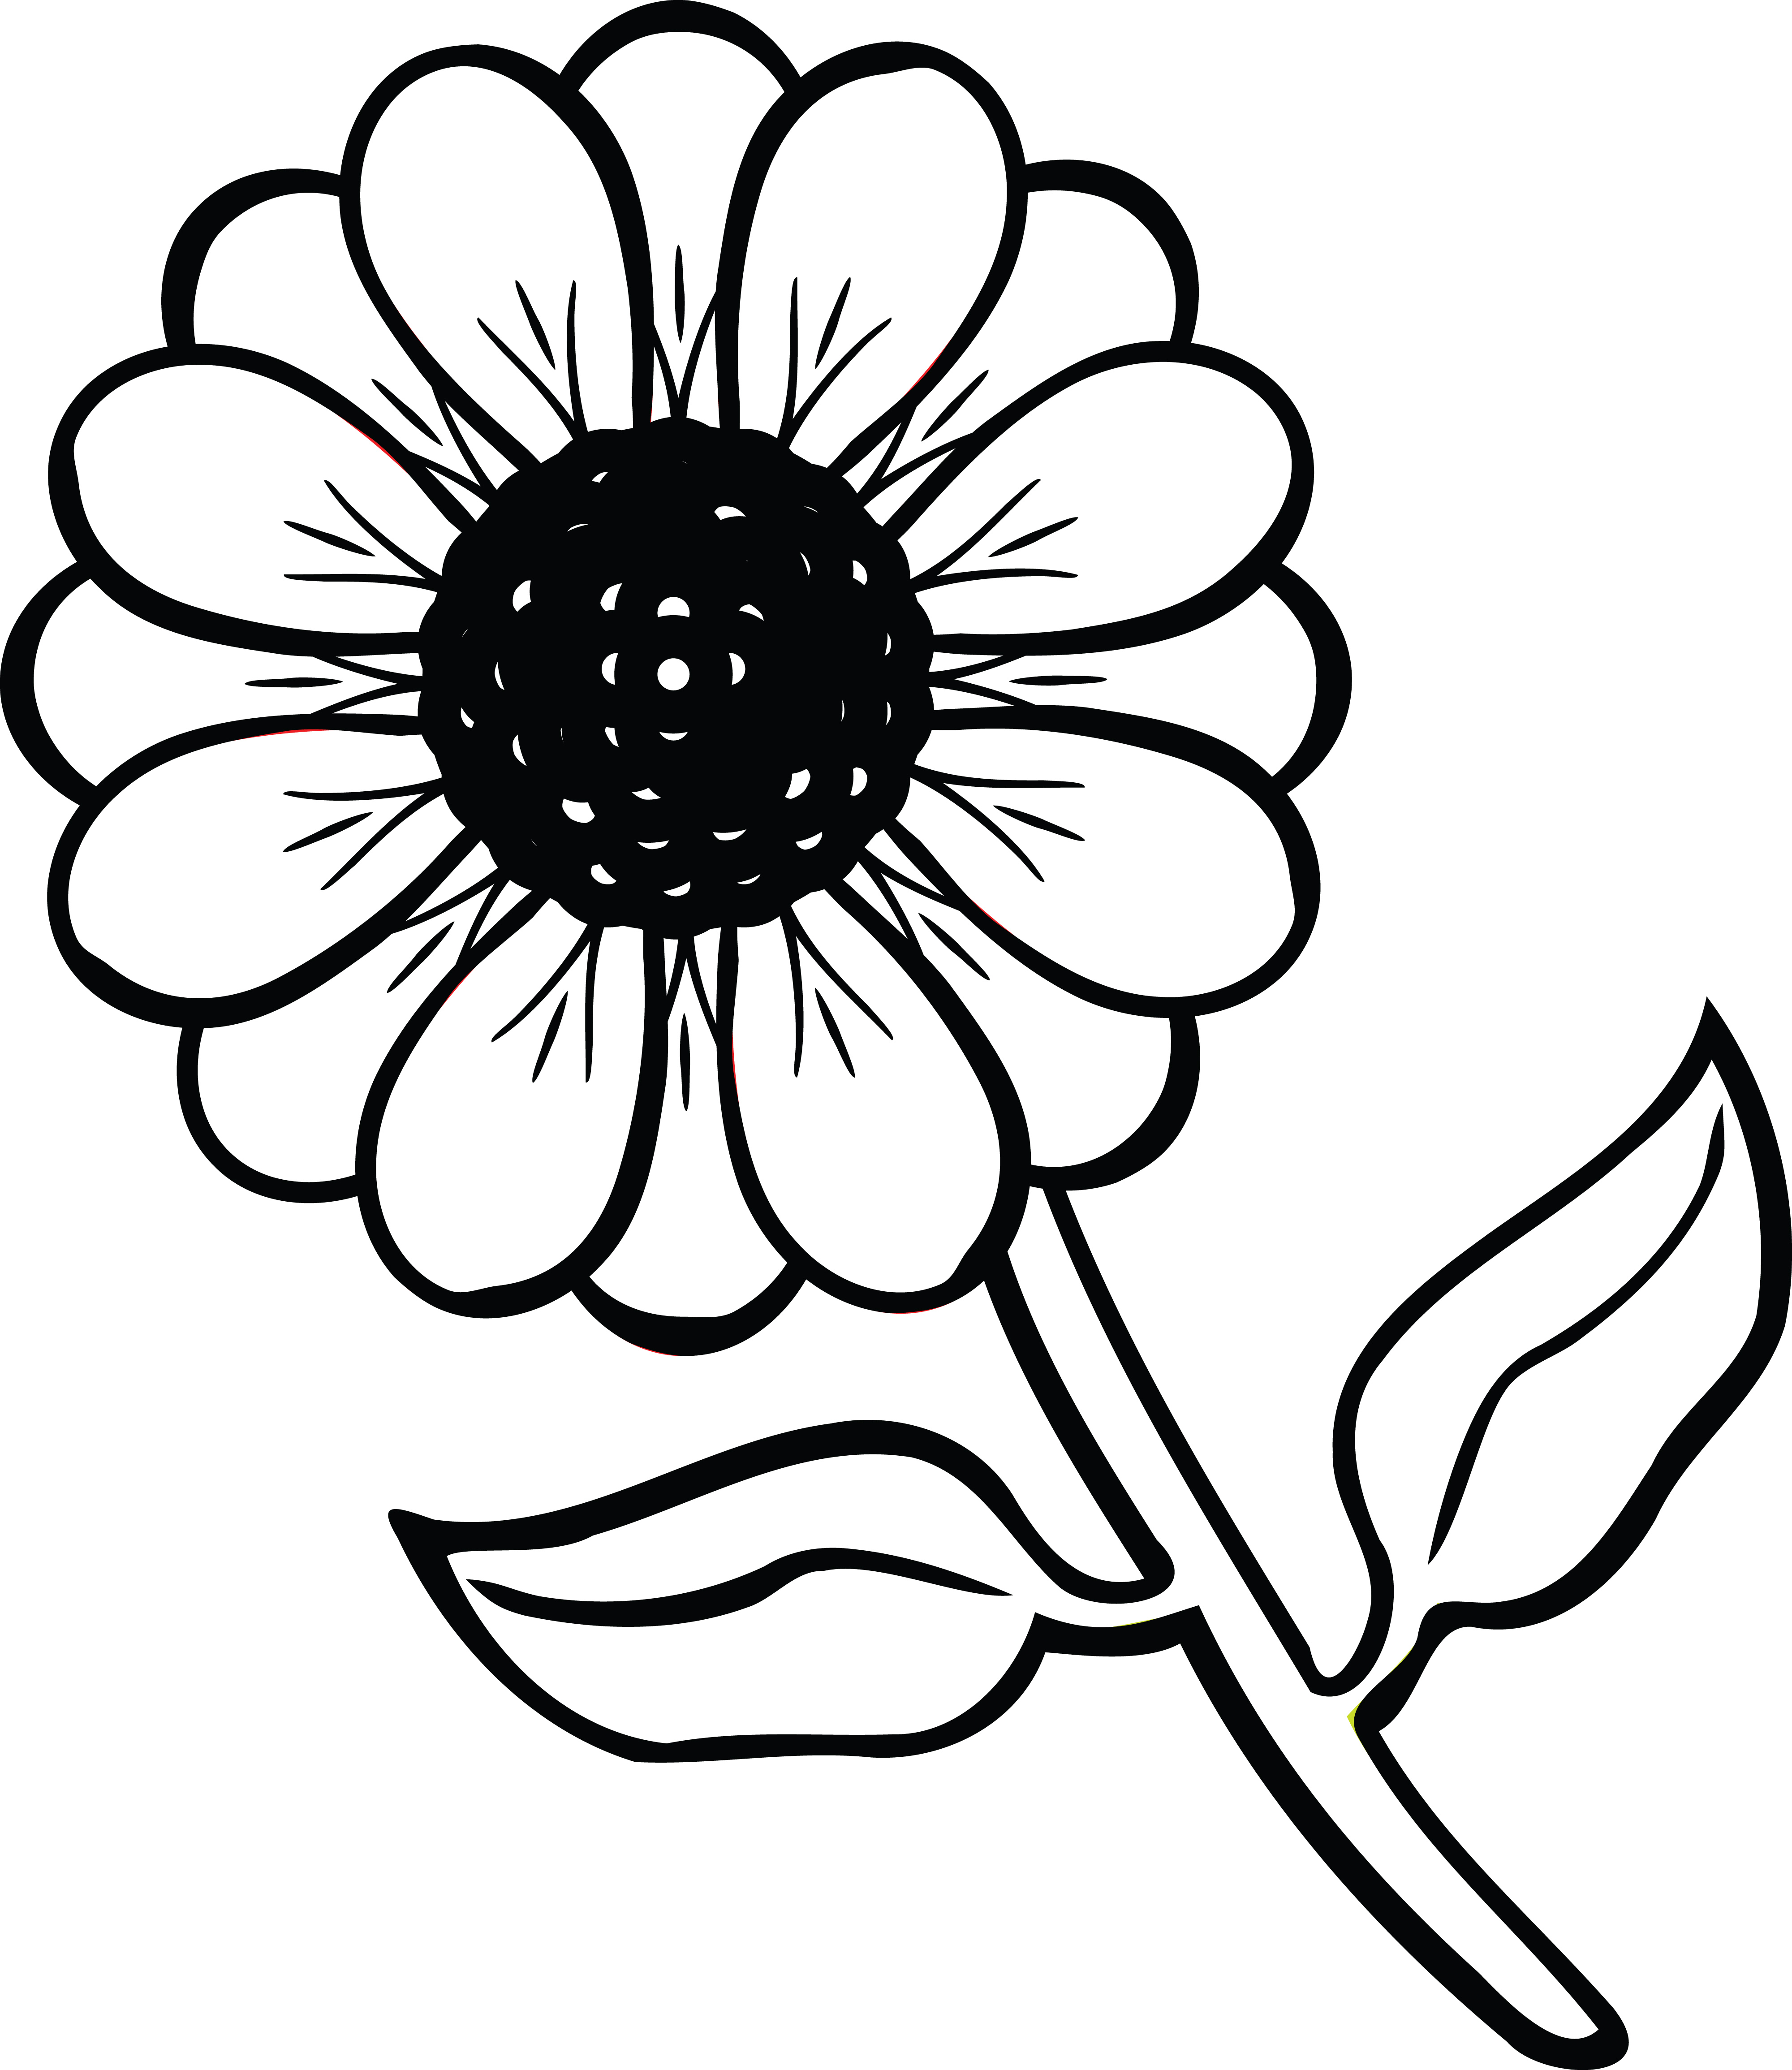 Free clipart of a daisy flower free clipart of a daisy flower 00011303 izmirmasajfo